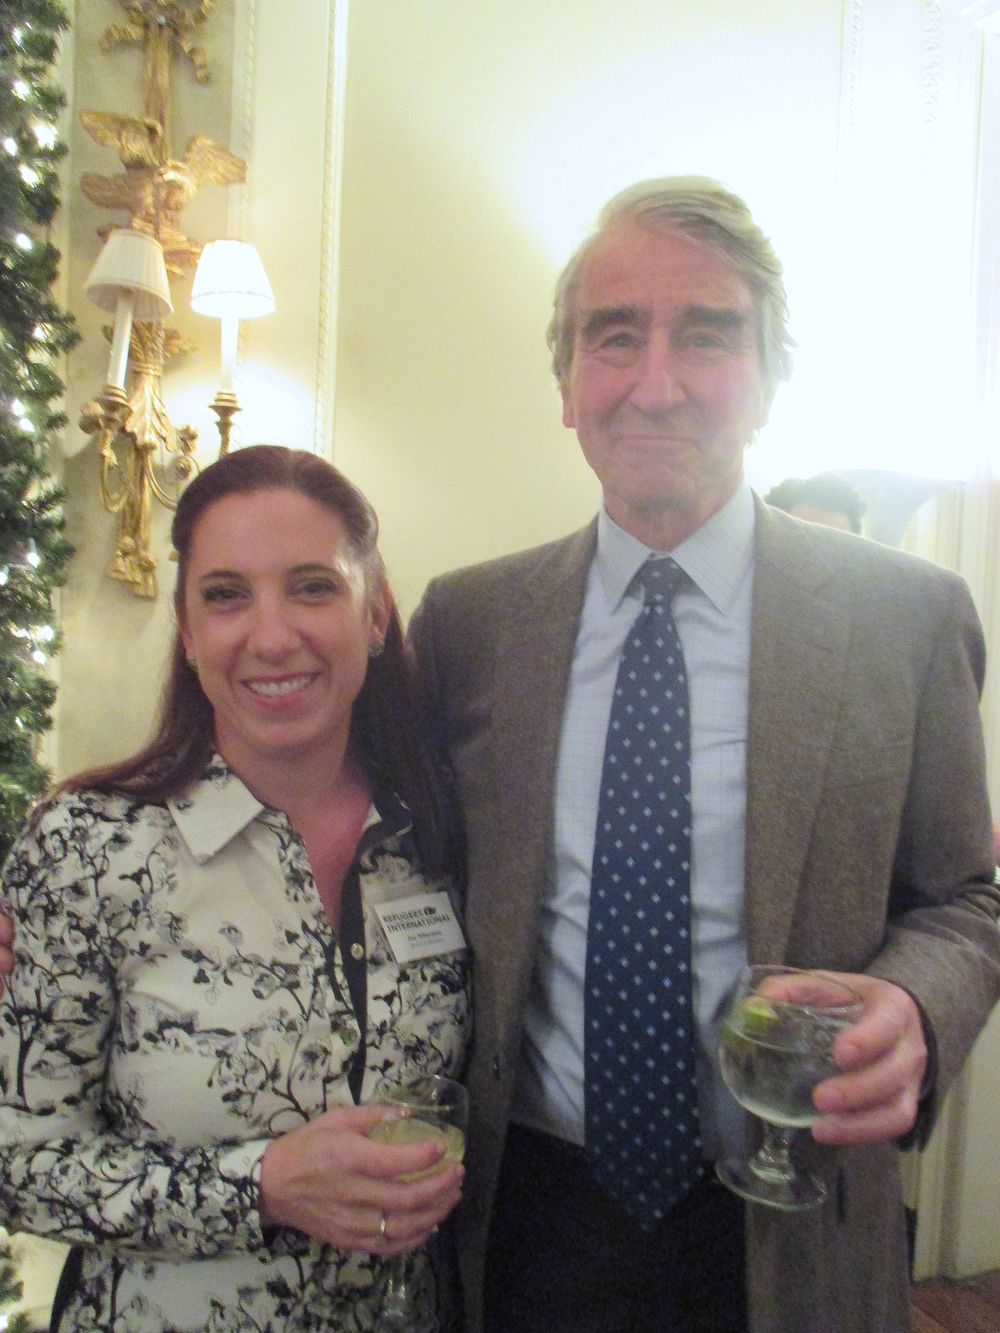 RI Board Members Joy Lian Alferness and Sam Waterston